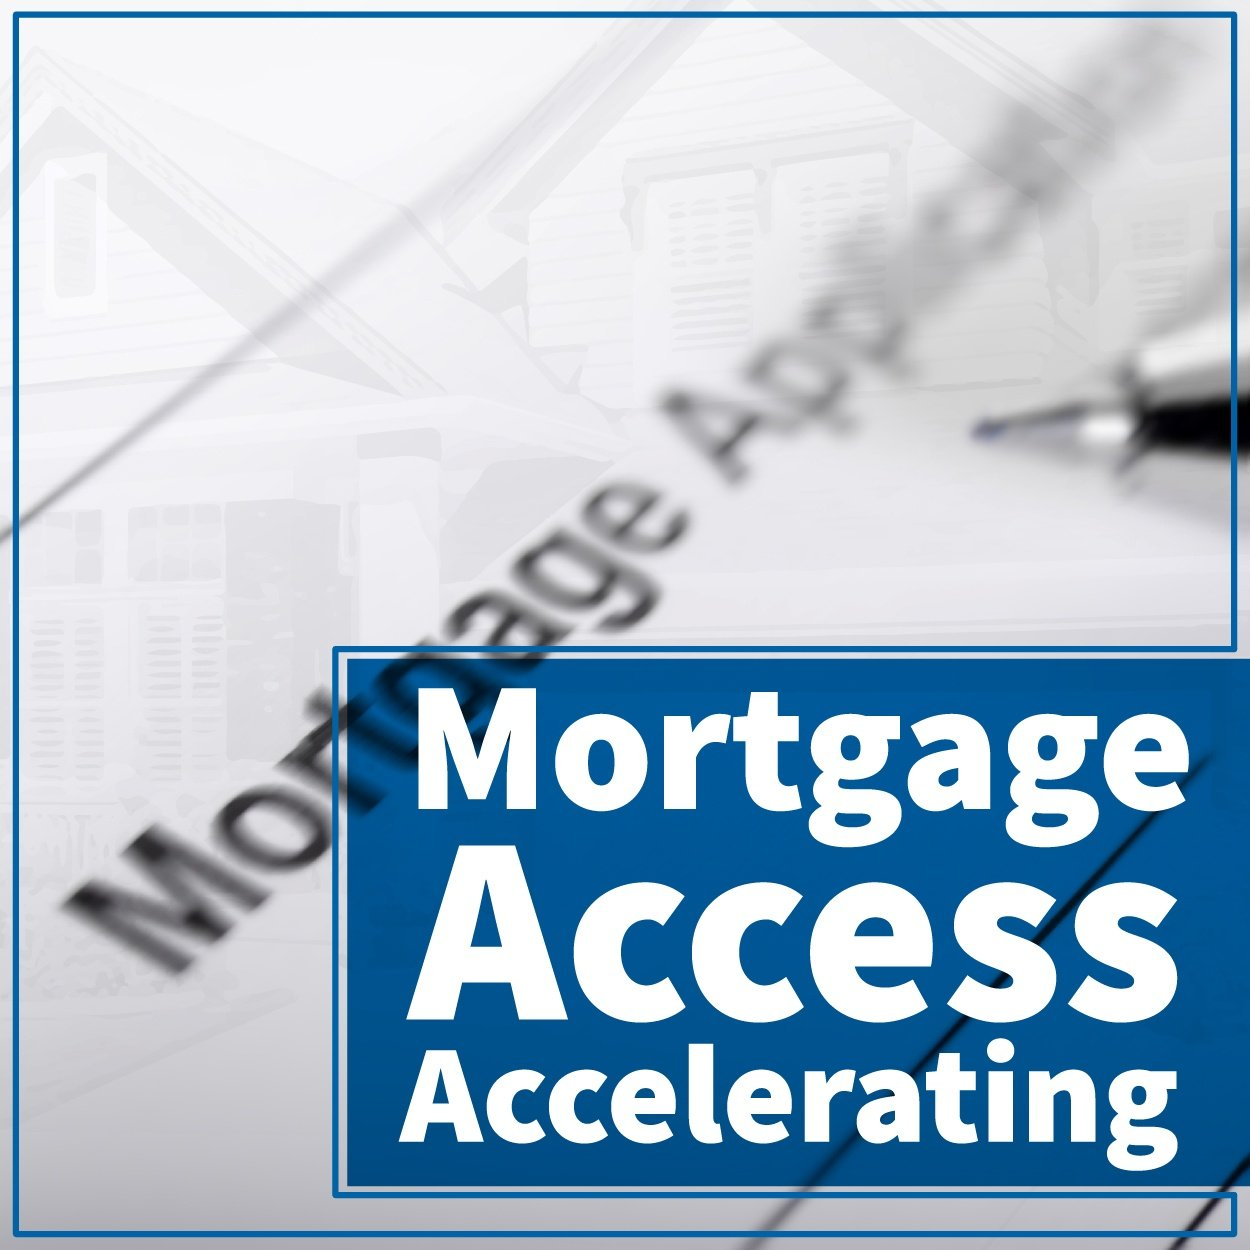 Mortgage_access_accelerating-01